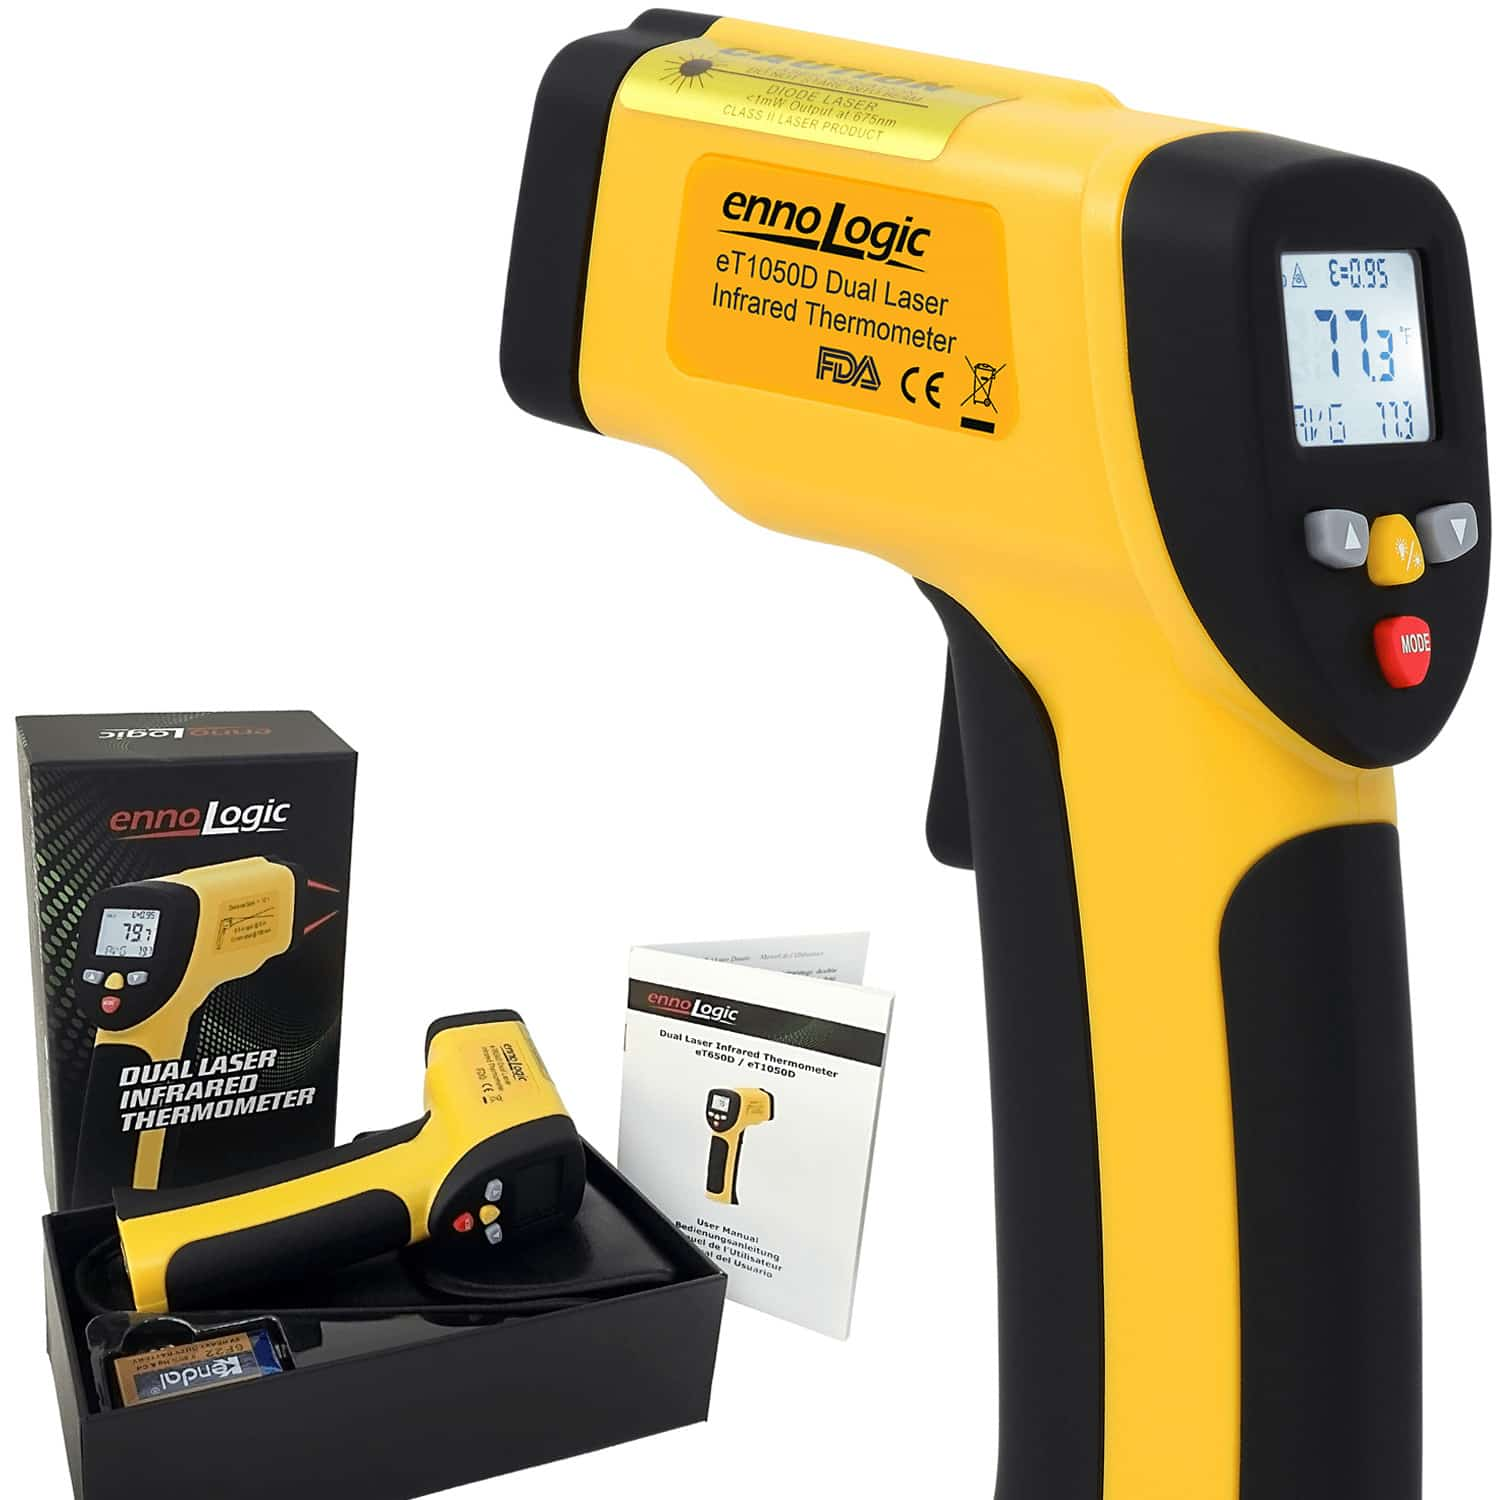 et1050d infrared thermometer ennologic temperature gun with gift set